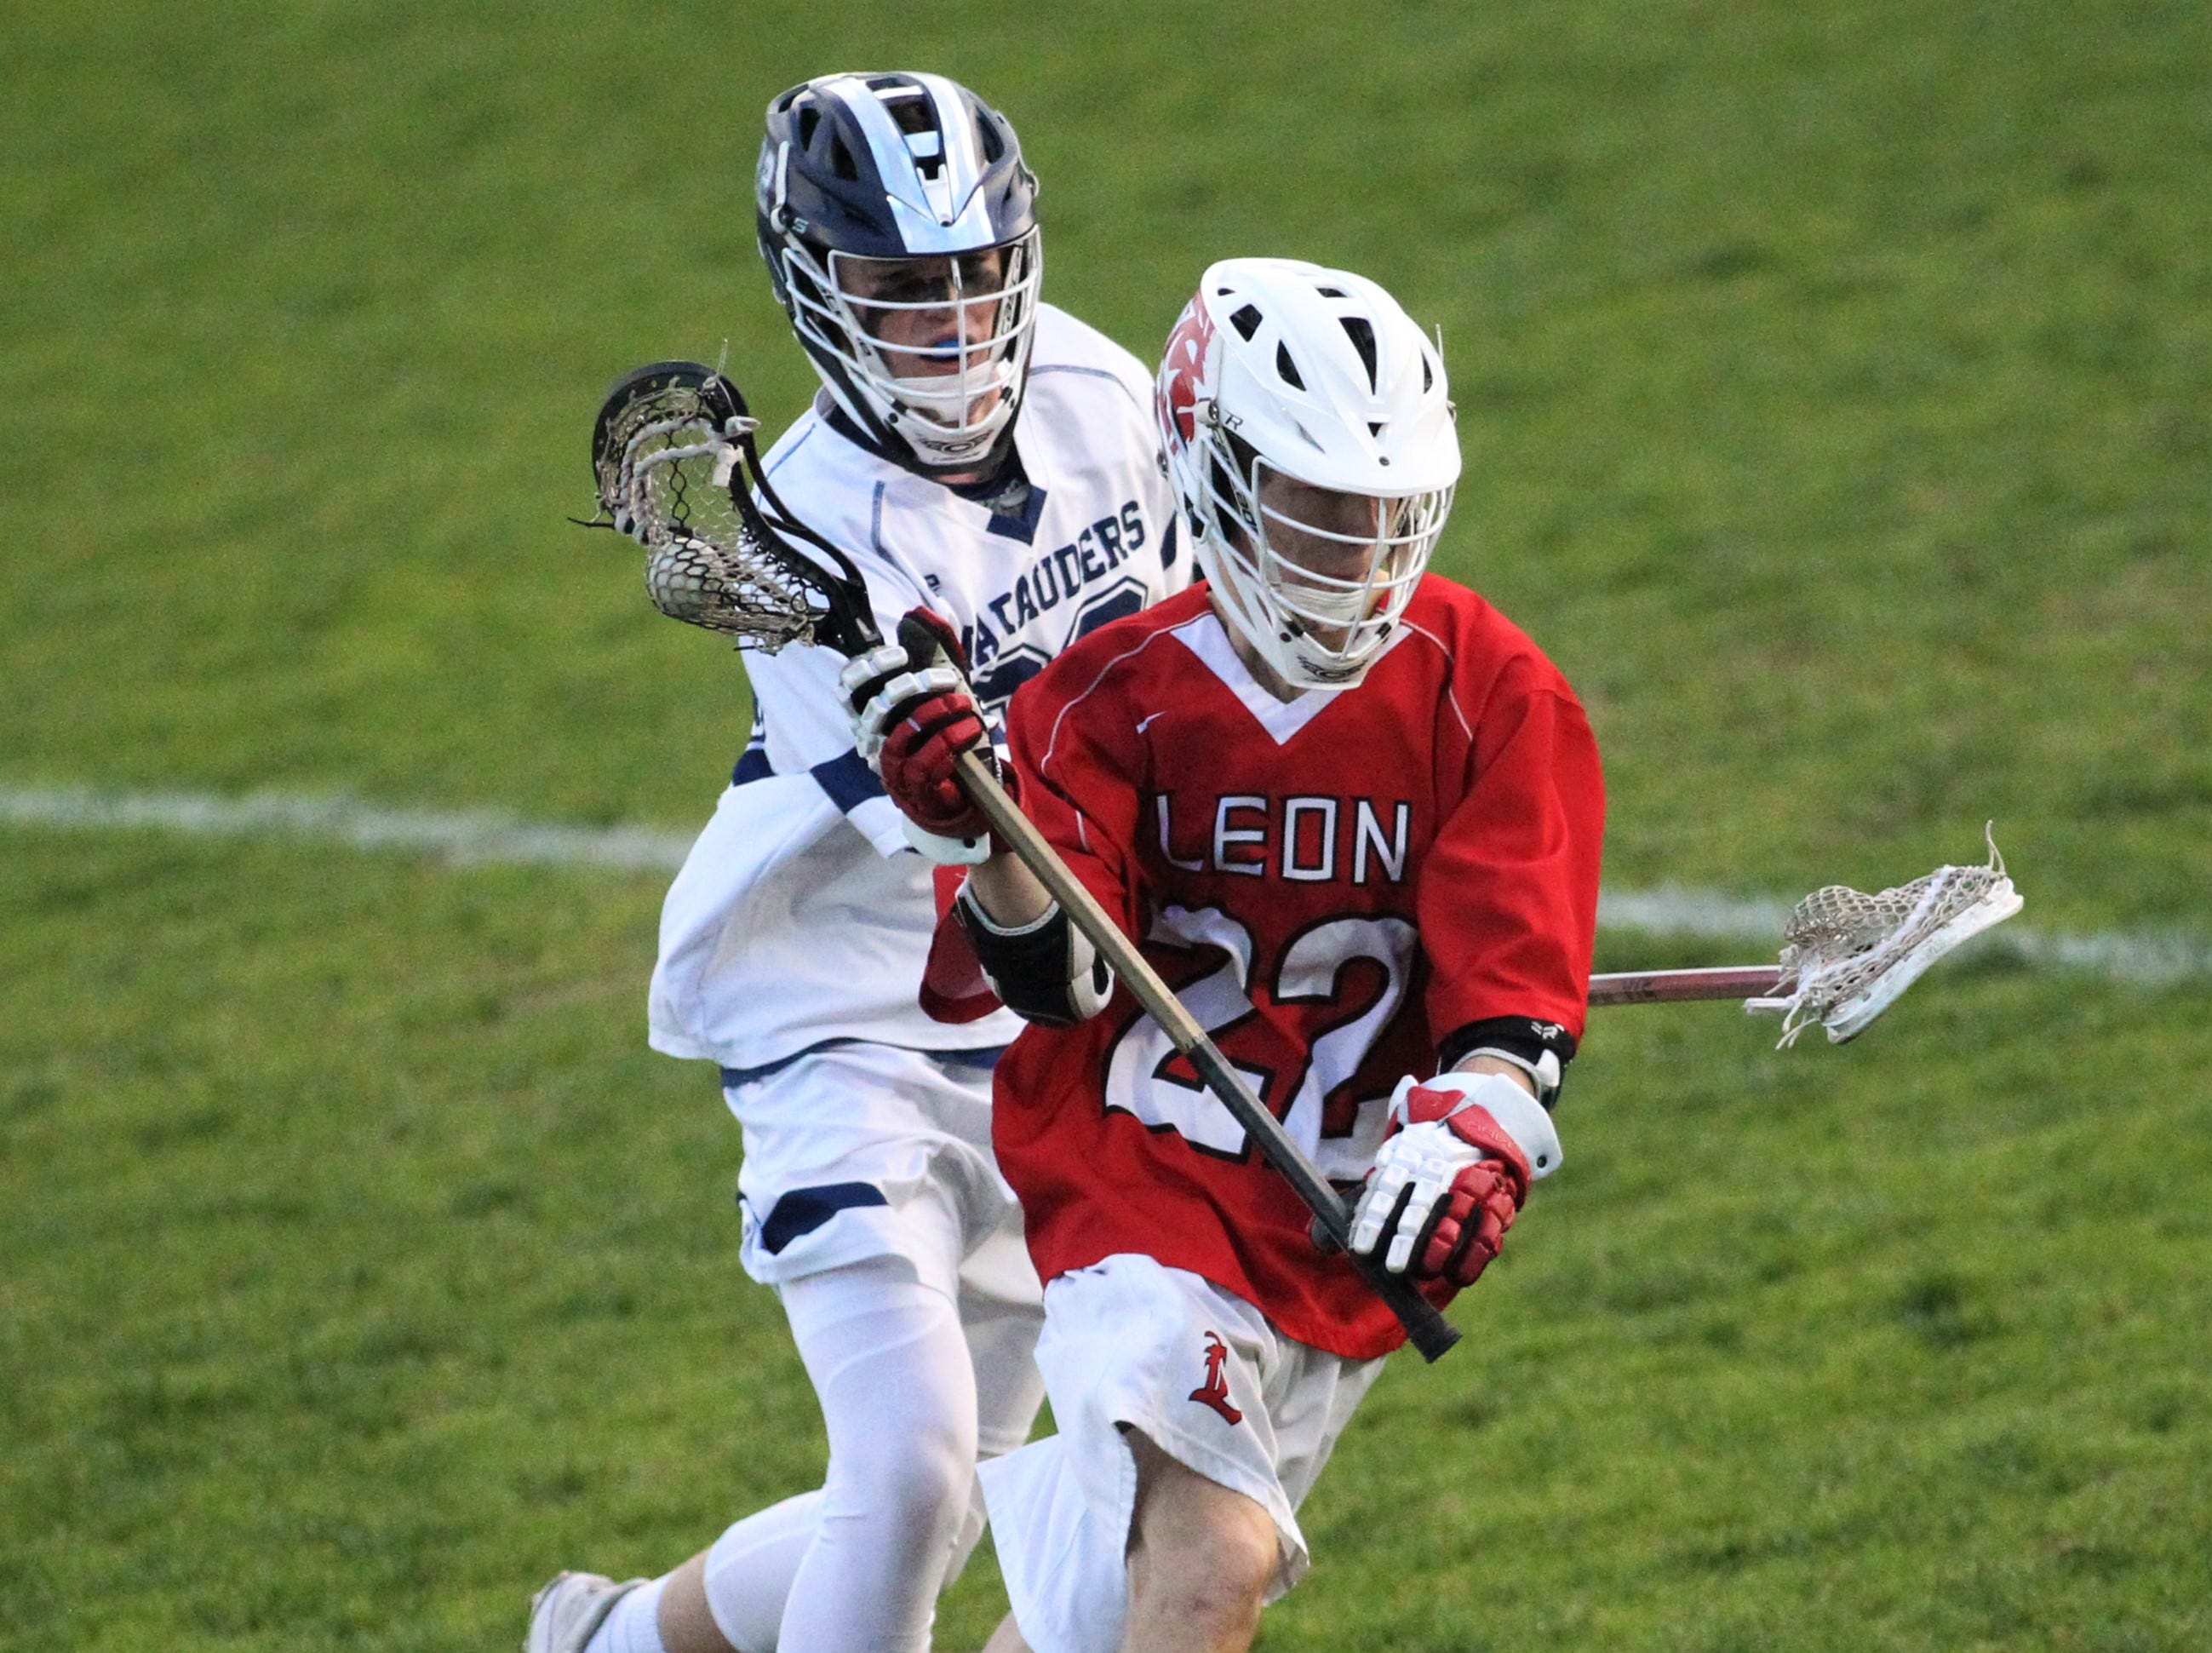 Leon's Shane Pichard tries to get free as the Marauders' lacrosse team beat Leon 15-5 on their annual Military Appreciation Night on March 12, 2019.